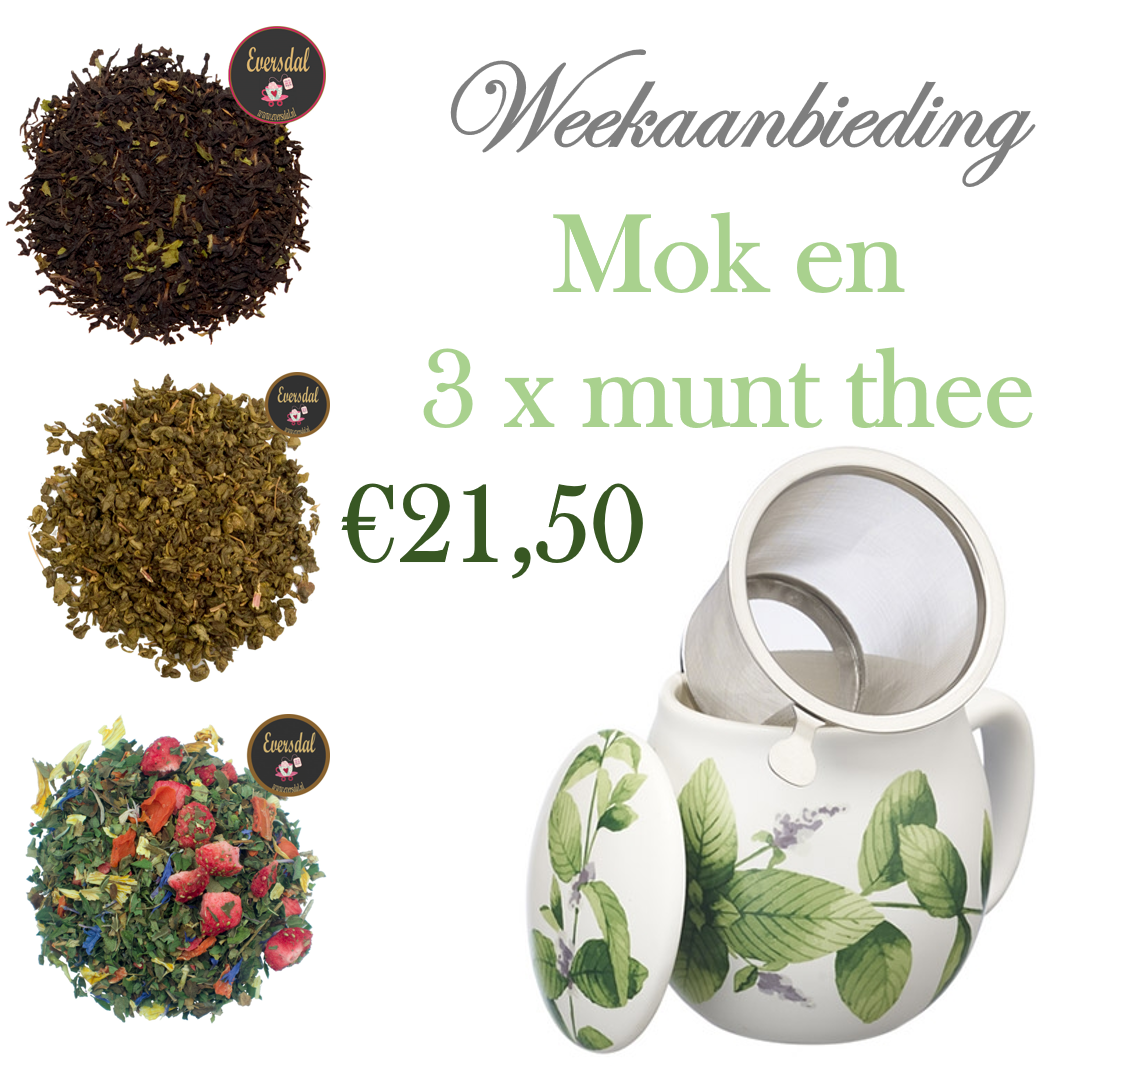 >> Weekaanbieding week 15 - vrijdag 9 april tot vrijdag 16 april